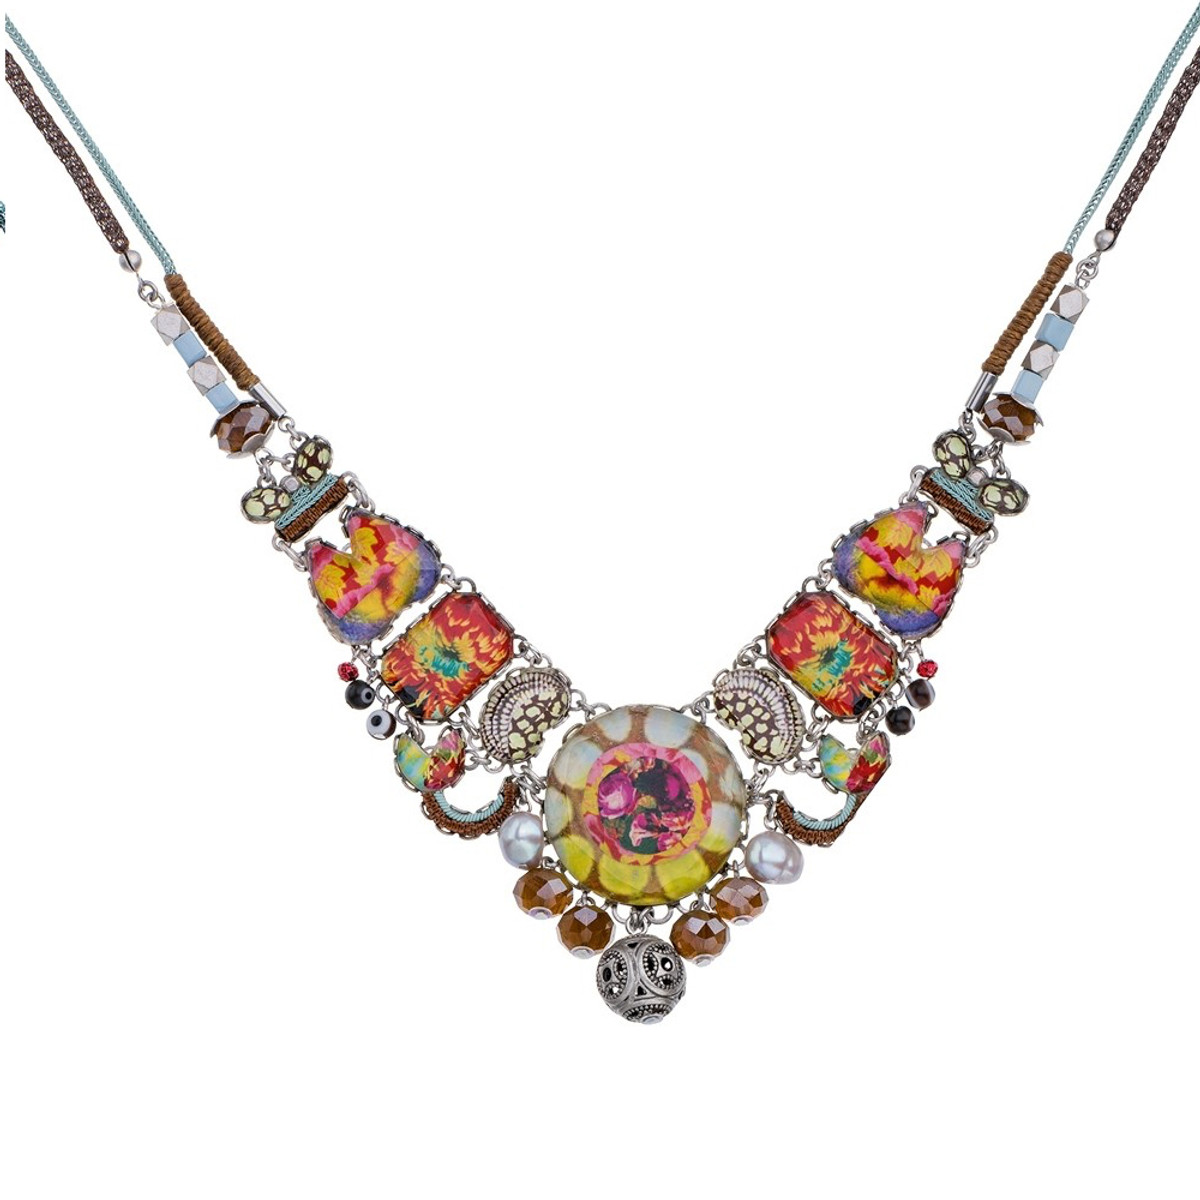 Ayala Bar Unforgettable Fire Weekend Necklace - New Arrival